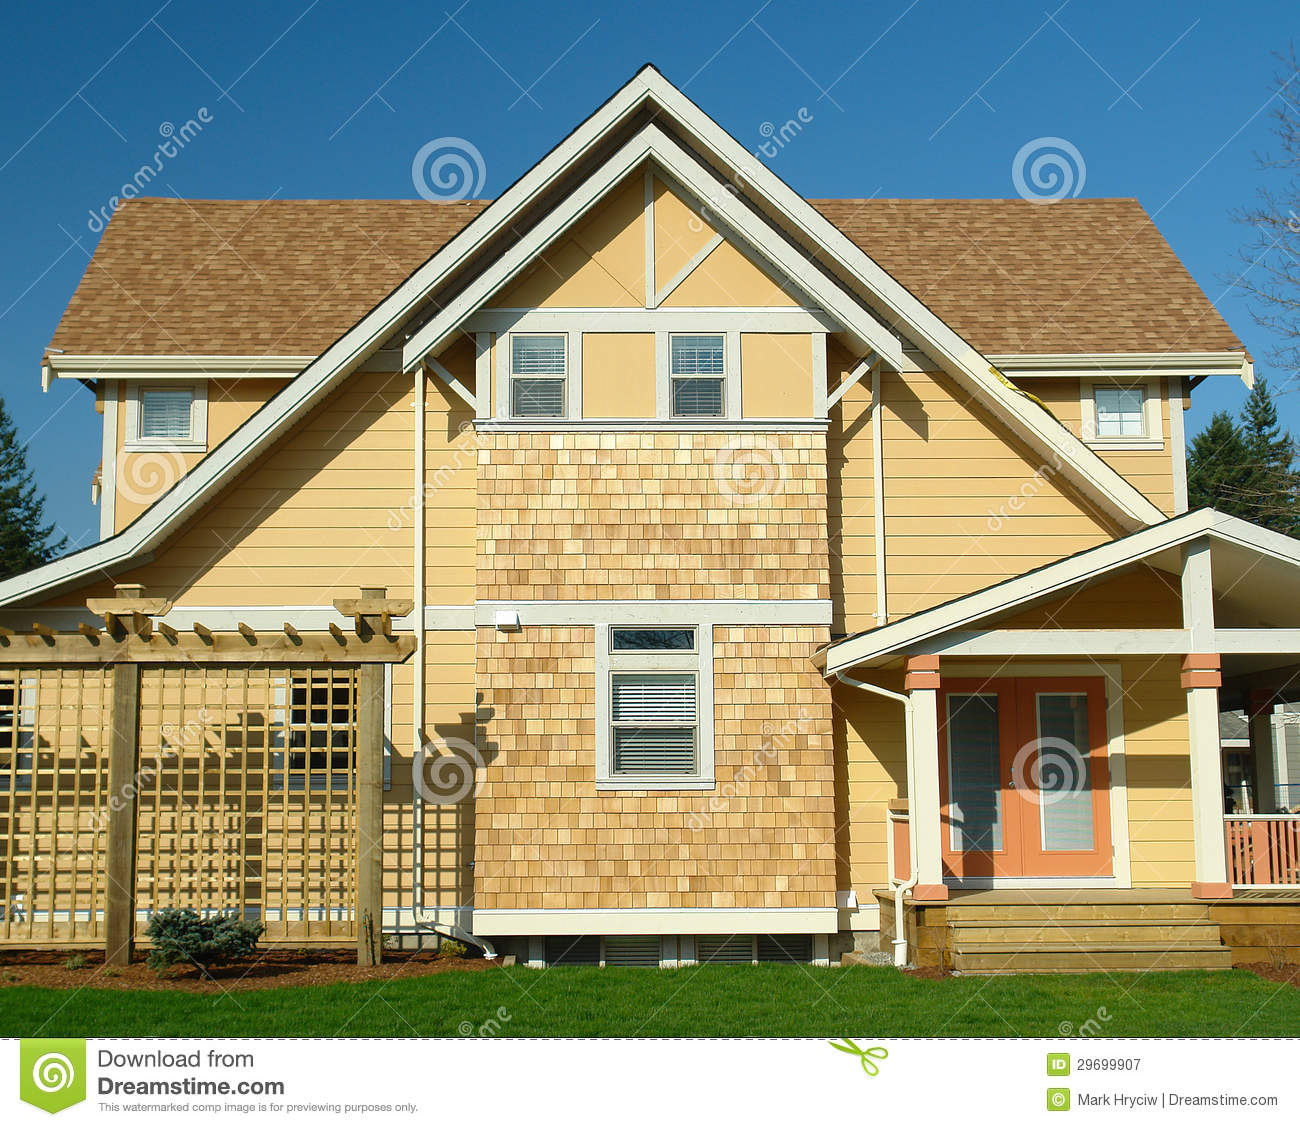 Home Exteriors: New Home Exterior Yellow Siding Stock Image